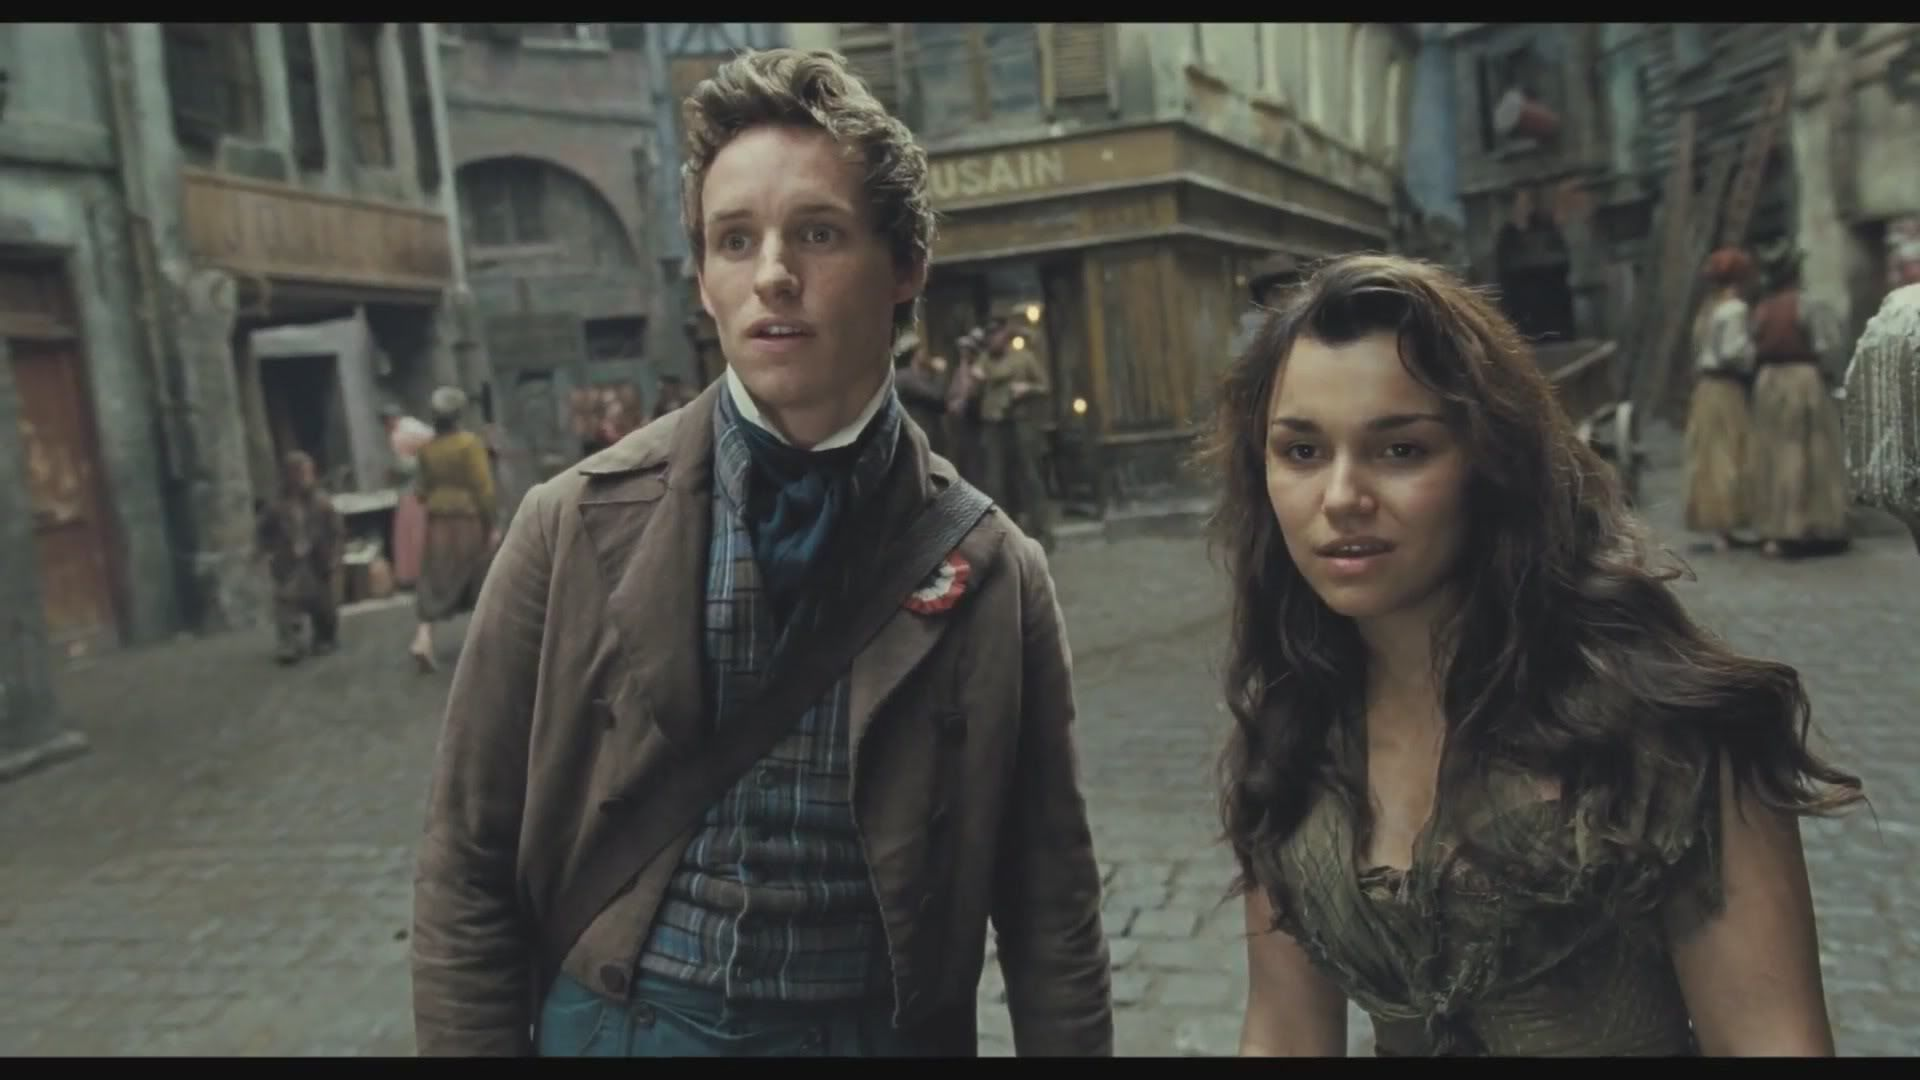 Les Miserables 2012 Trailer Craft Featurette And Clip Screencaps Les Miserables Les Miserables Movie Les Miserables 2012